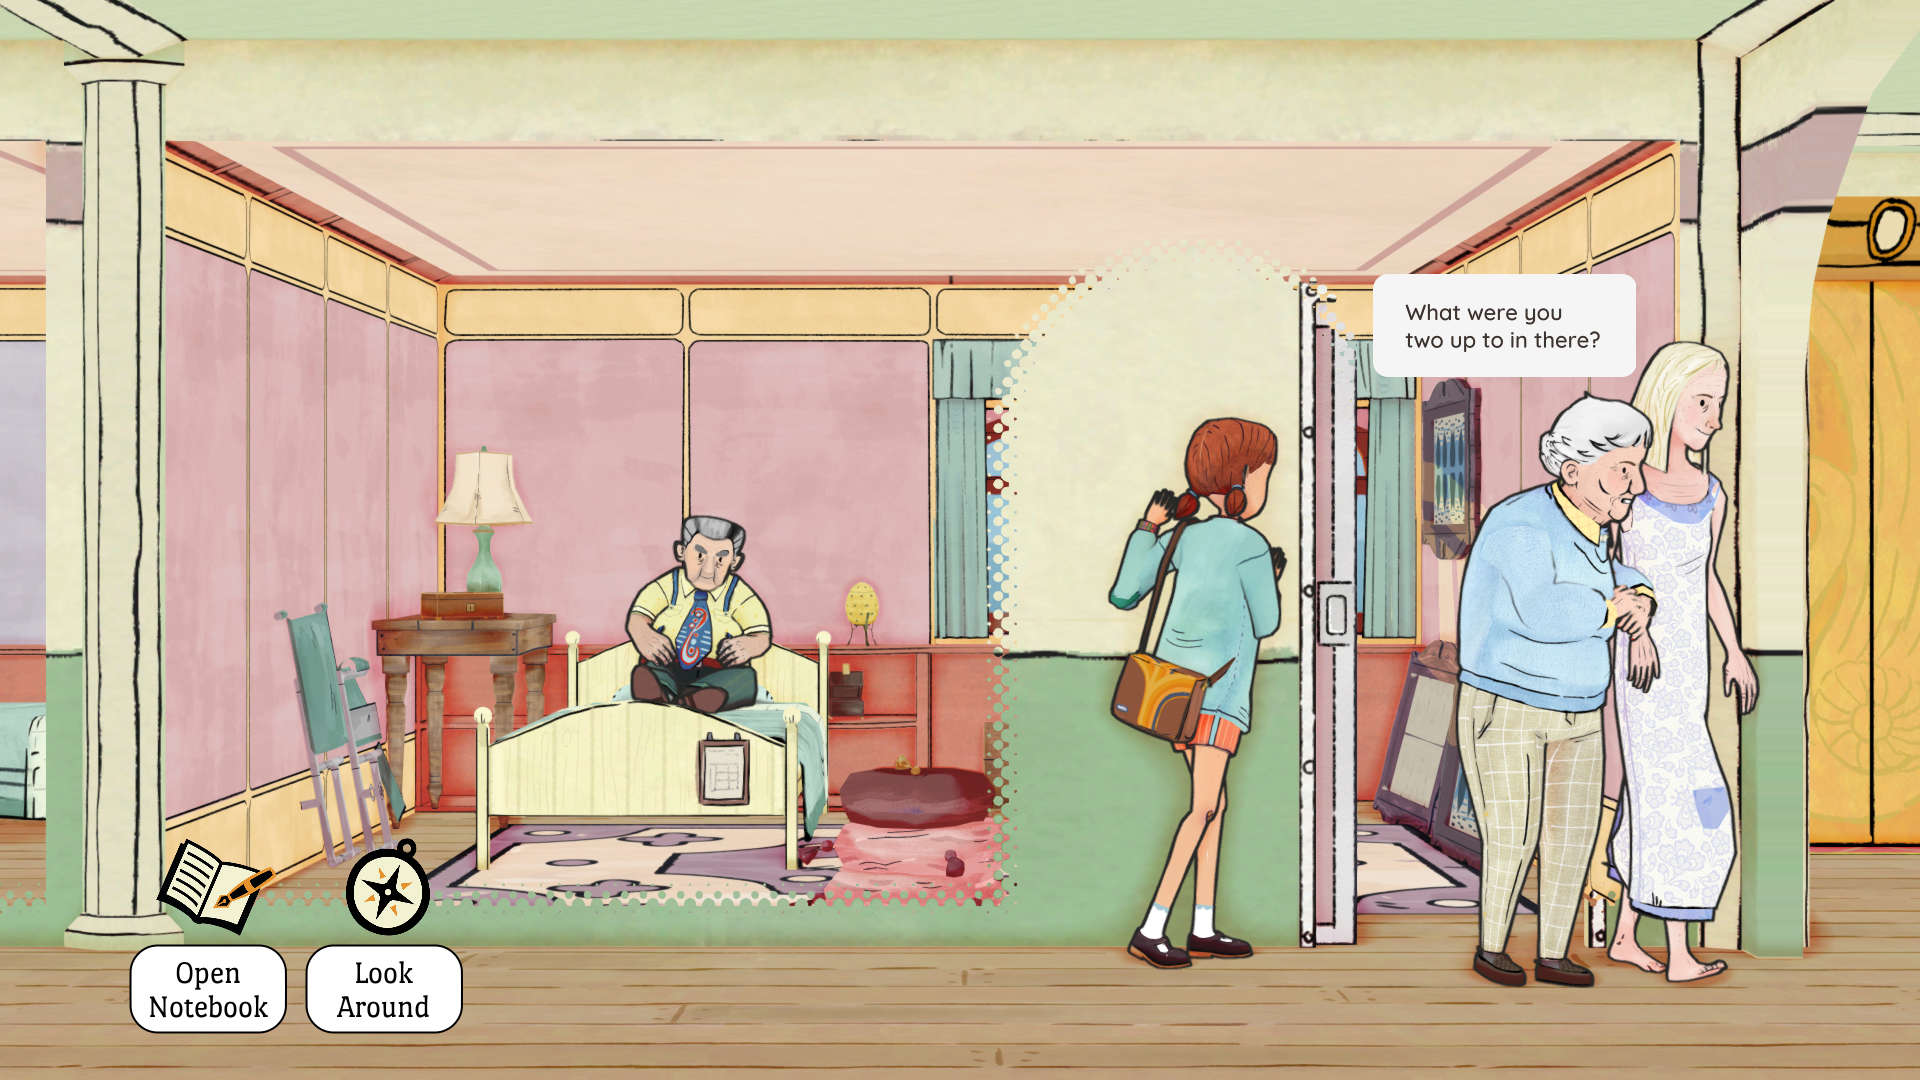 A cutaway through a wall shows an old man sitting on a bed as a girl places her ear against the wall. Two women are walking out the door of the room, the one on the left is hunched over and has grey hair and the one on the right is taller and has long blonde hair.